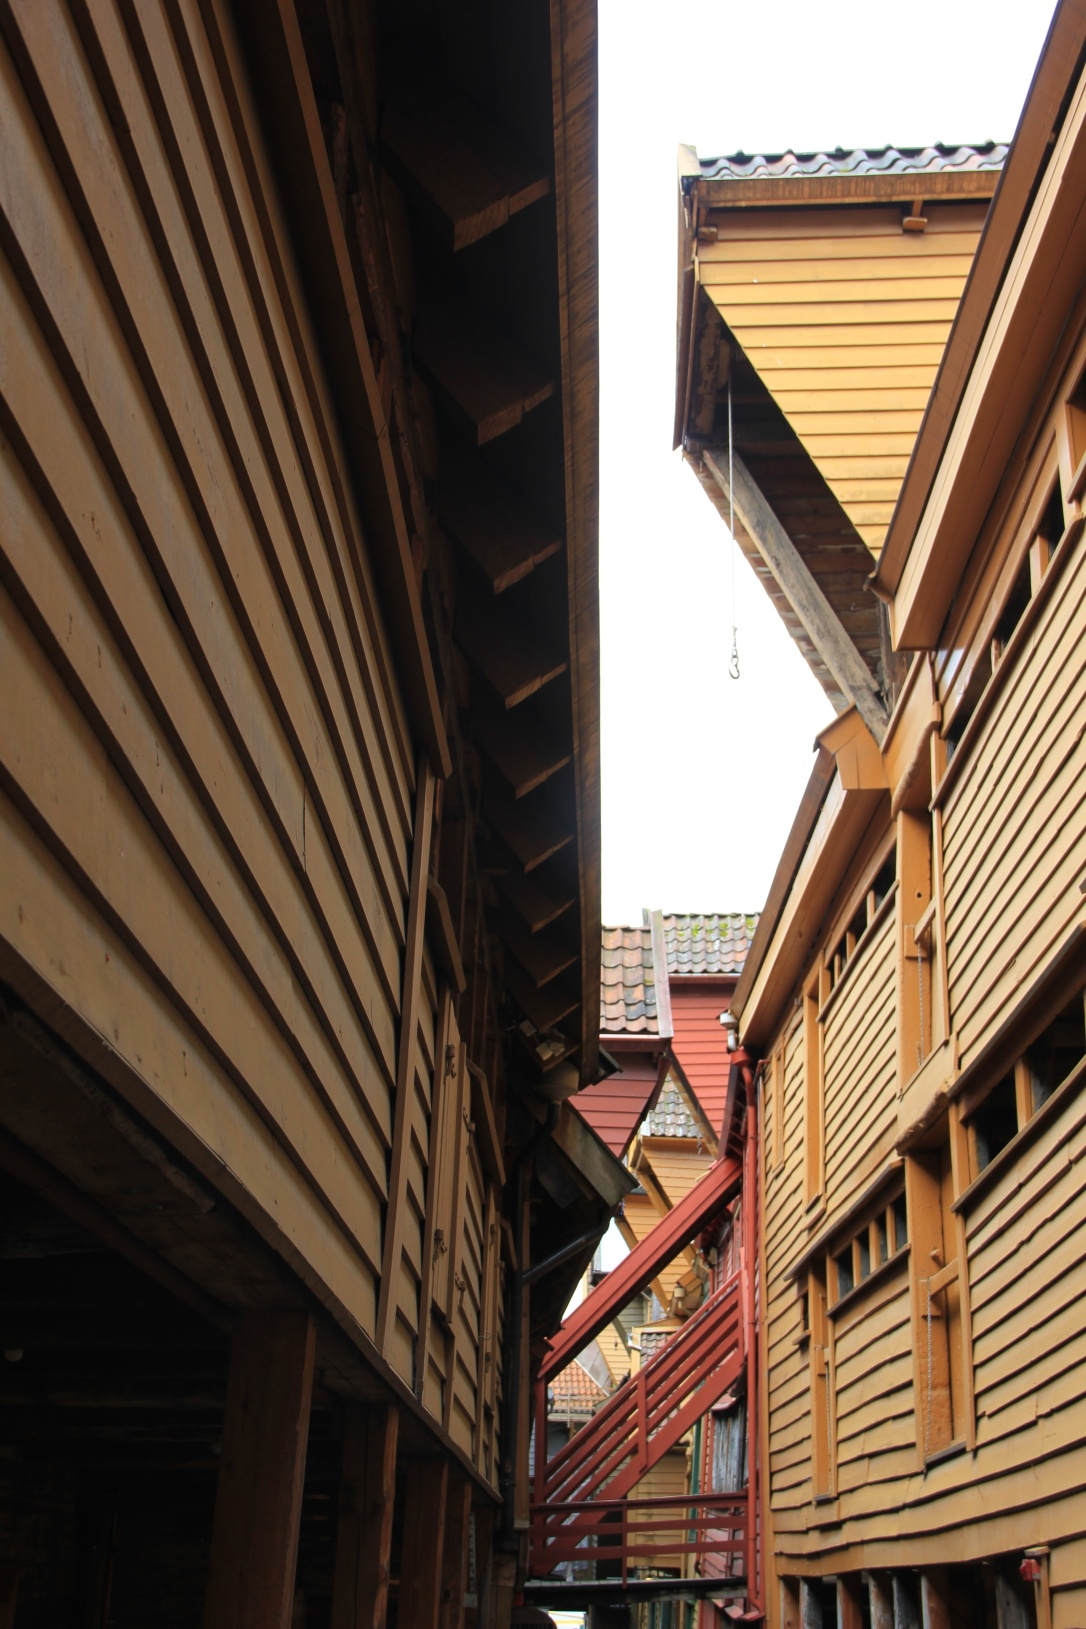 Things to do in Bergen - Bryggen Hanseatic Wharf